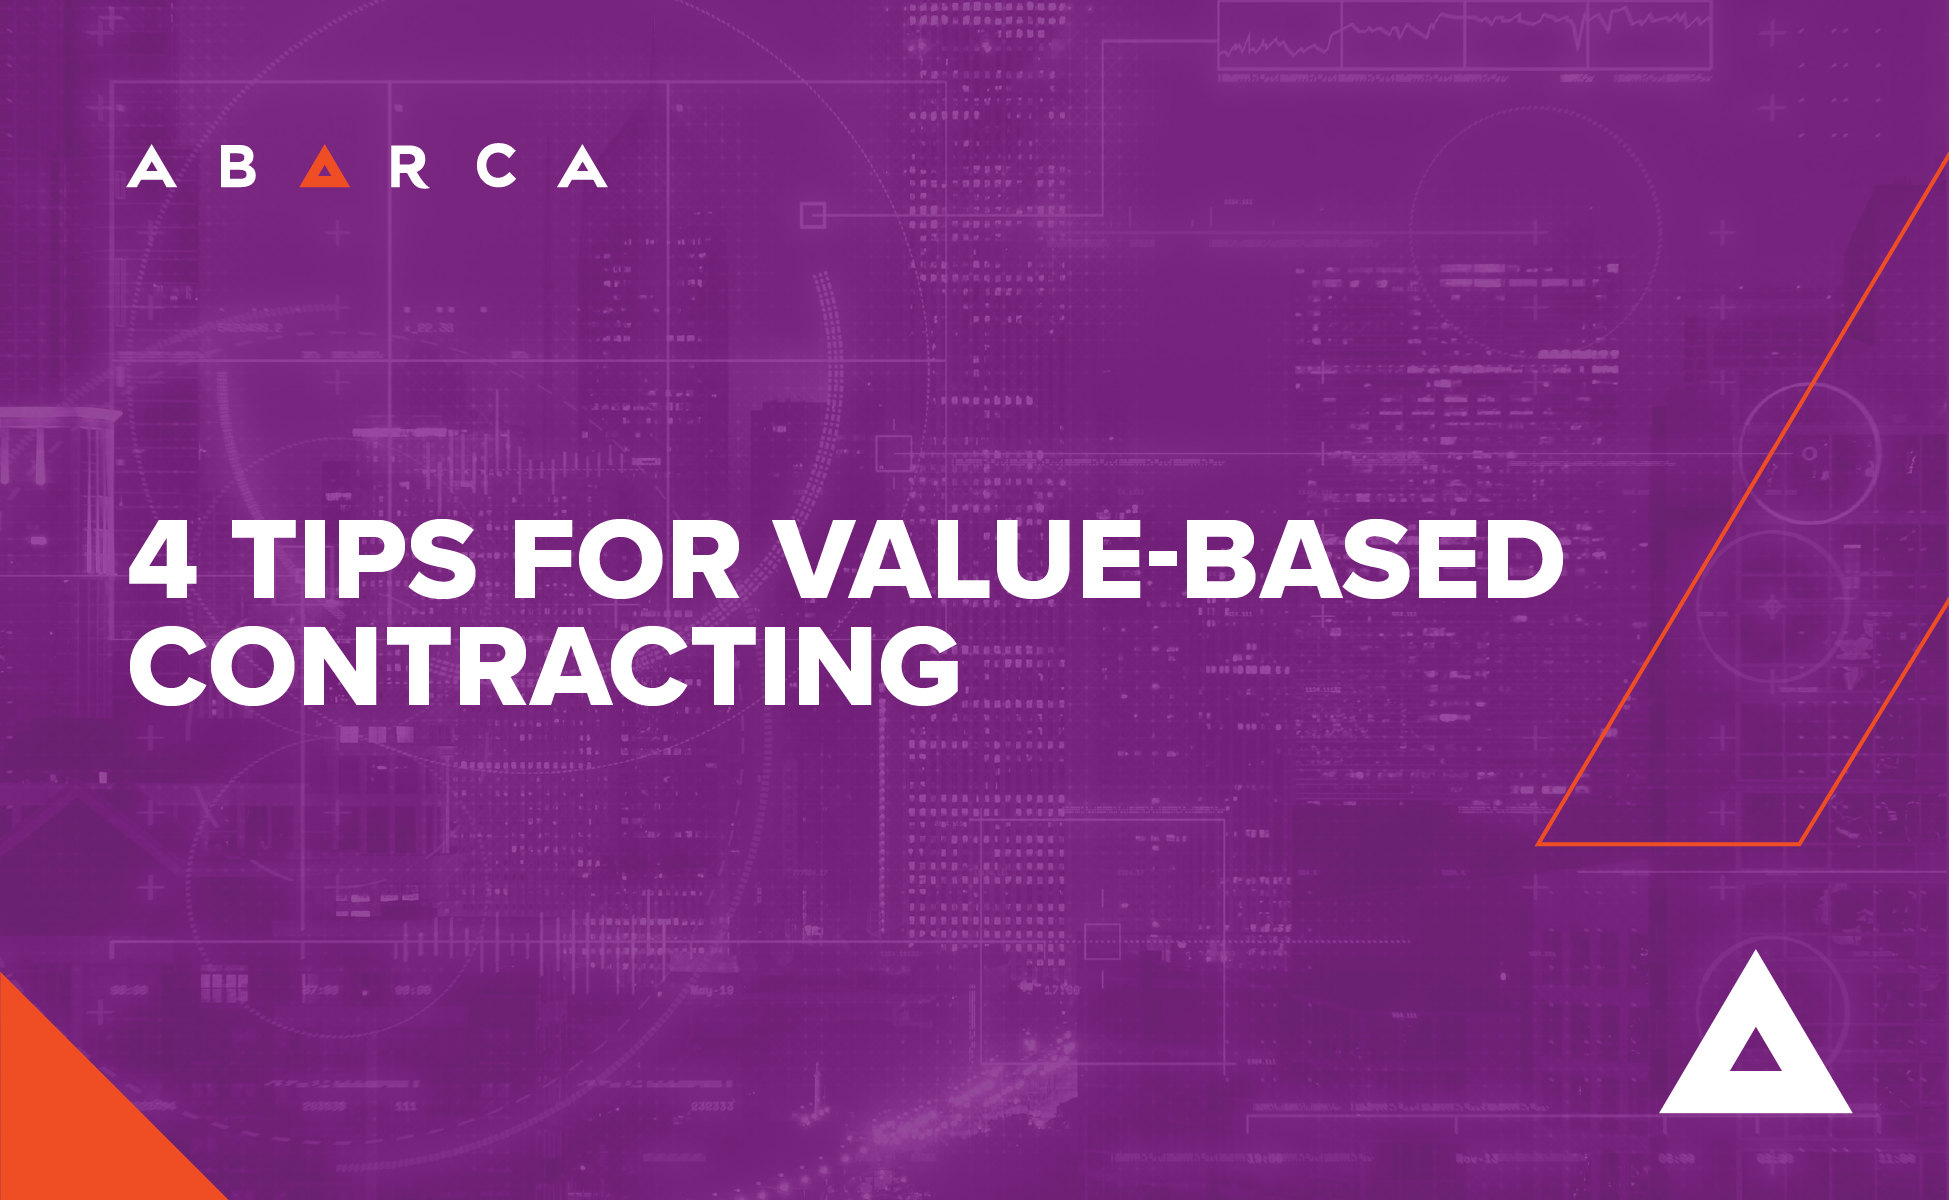 Abarca Health: 4 Tips for Value-Based Contracting